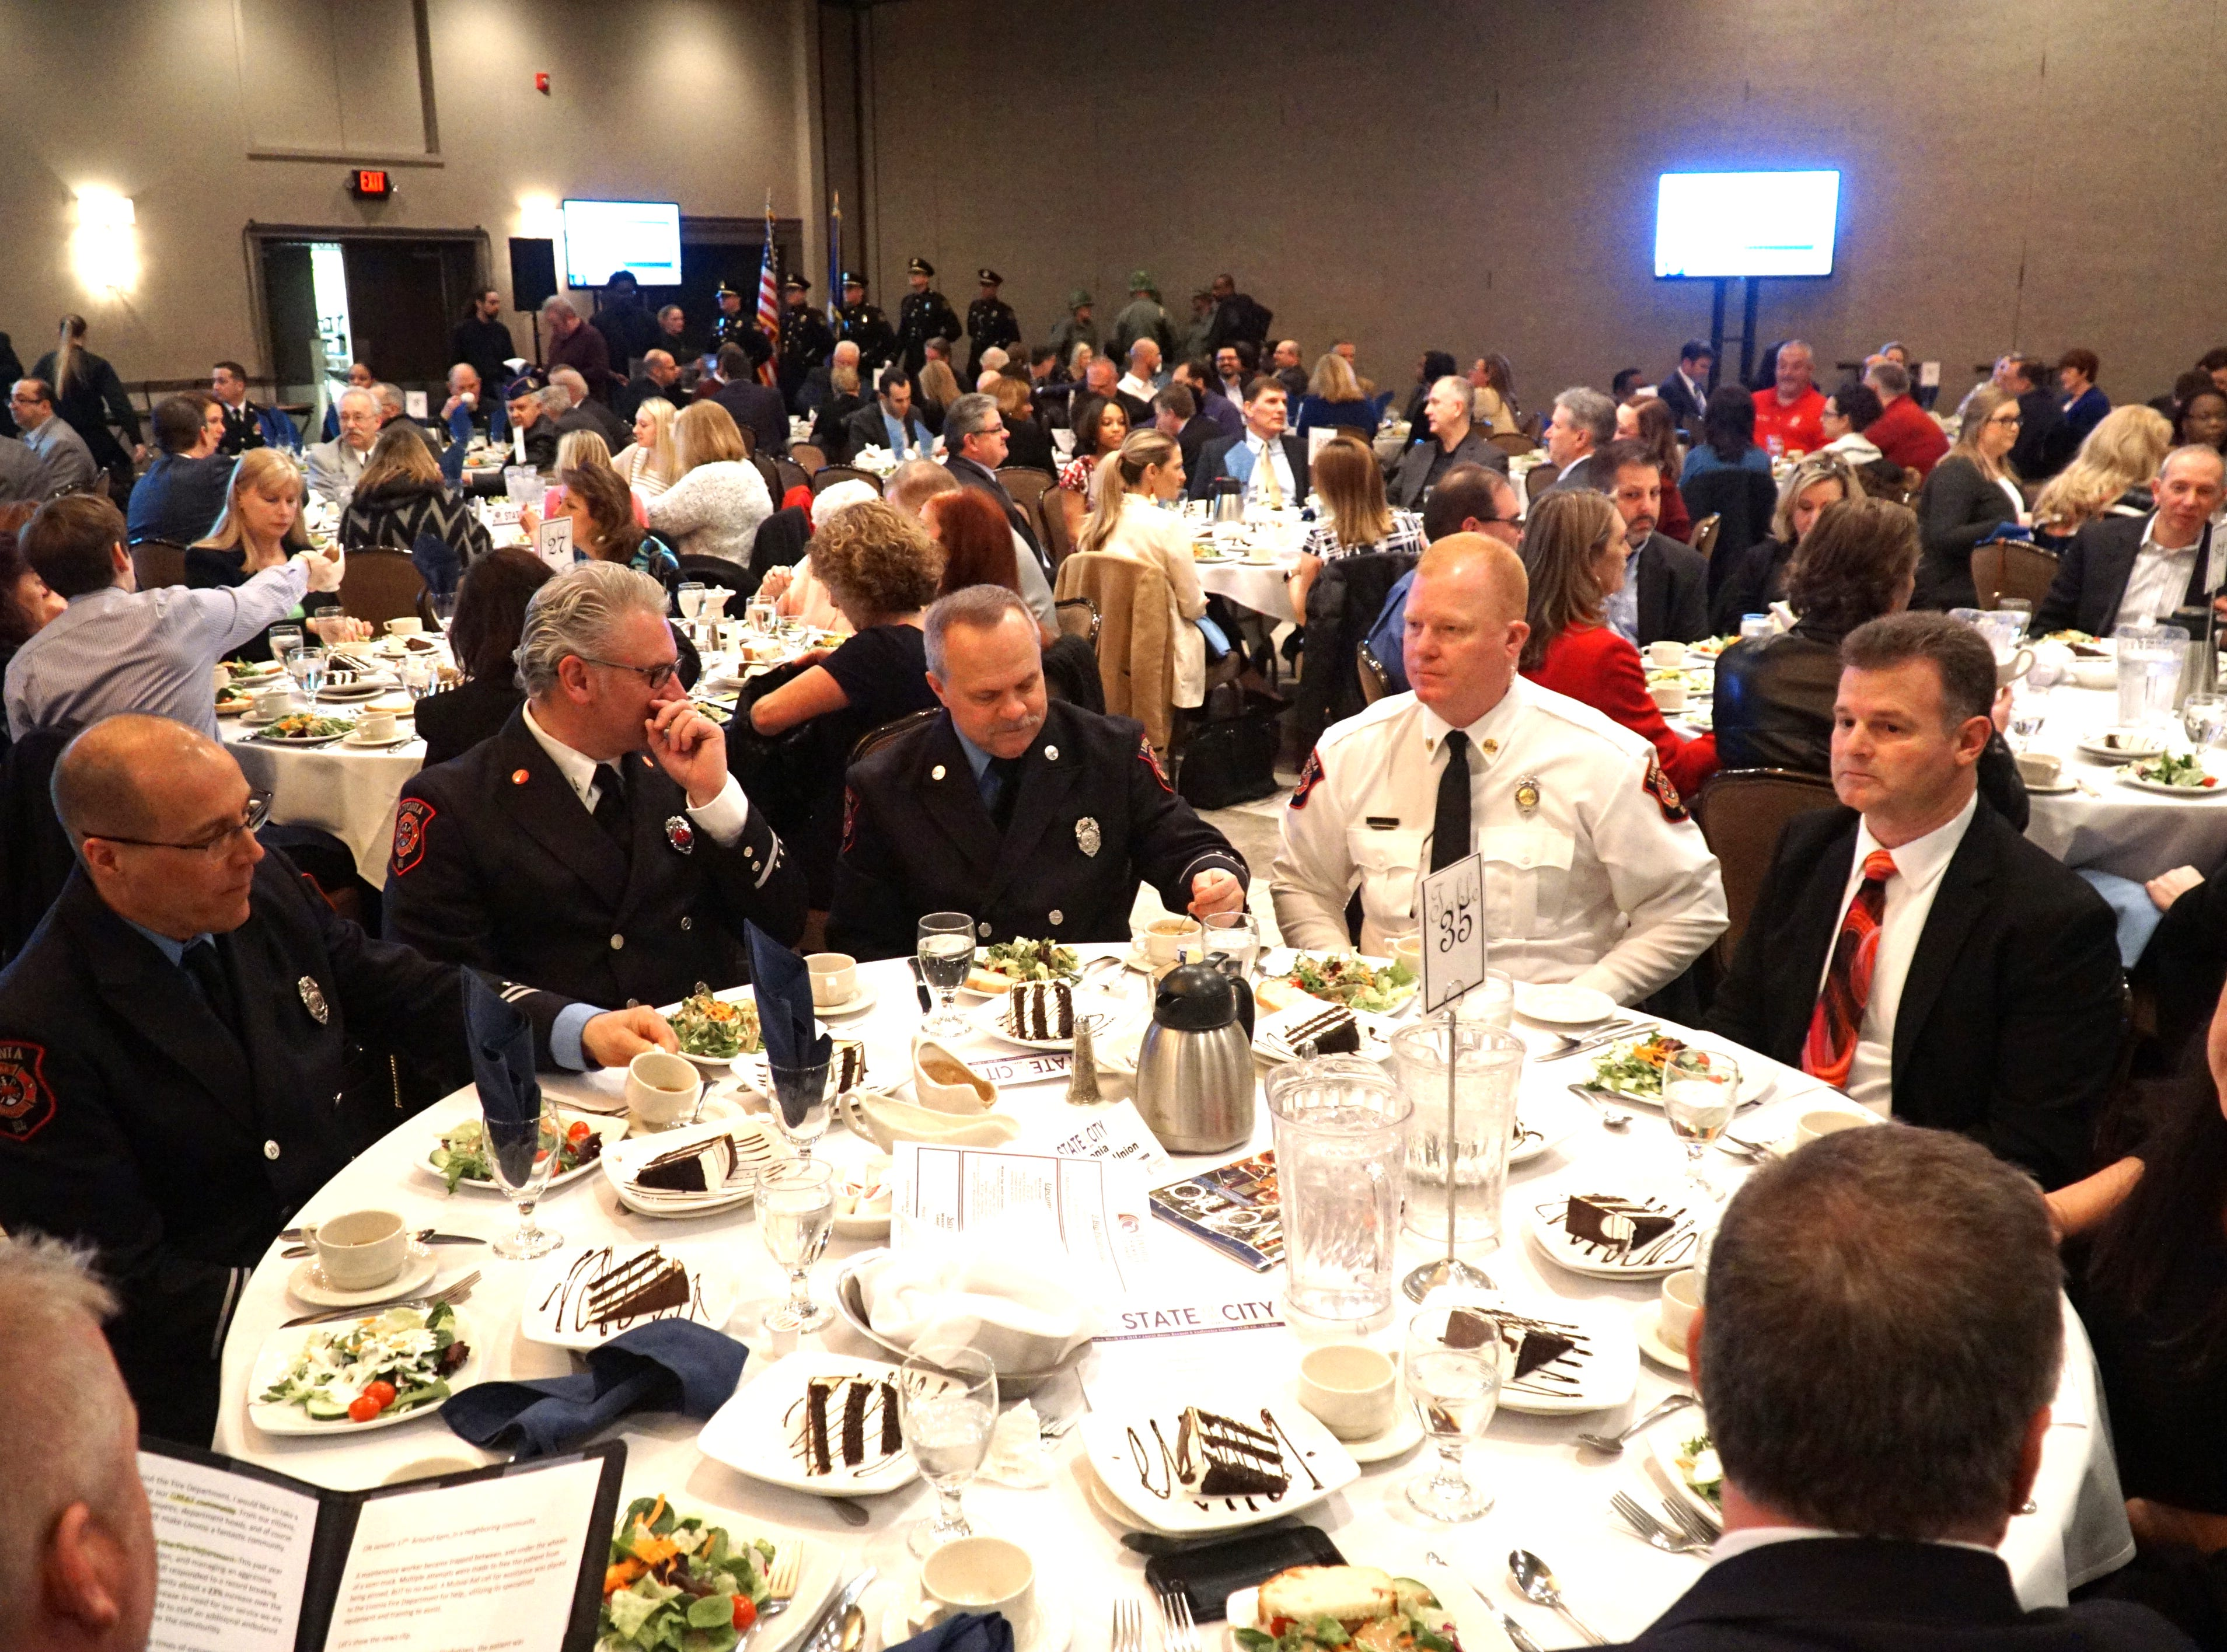 About 500 people attended the March 13 State of the City address for Livonia at Laurel Manor.